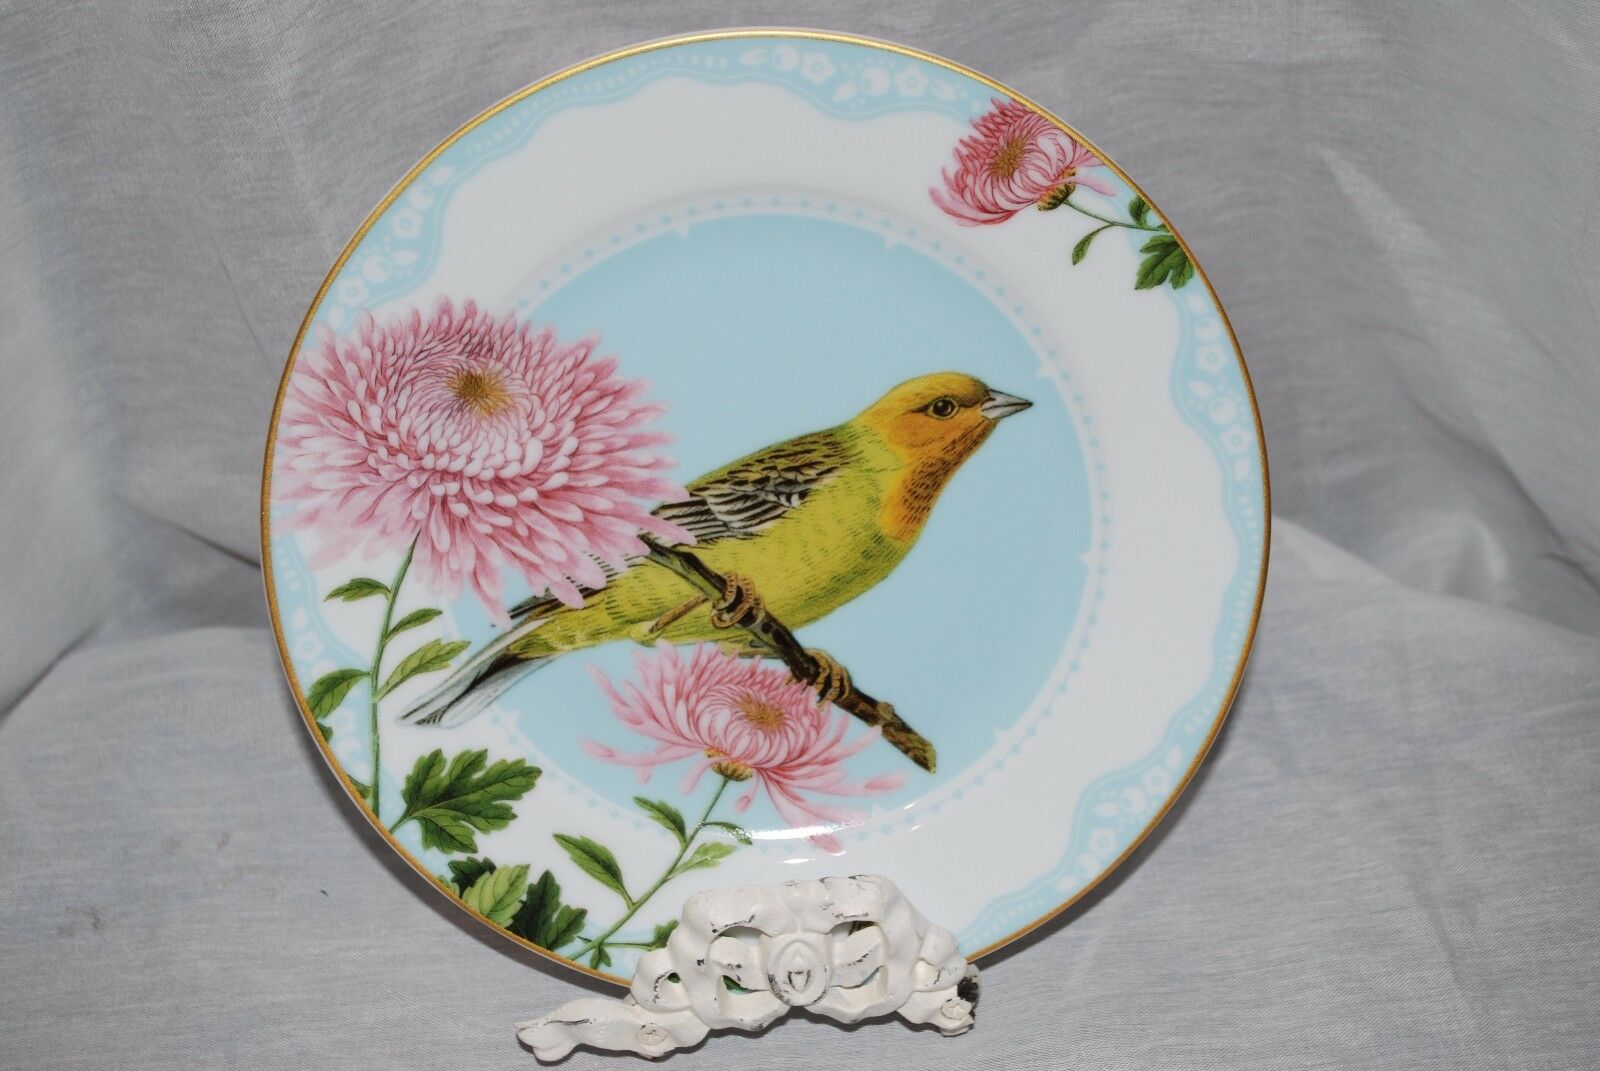 WILLIAMS SONOMA SPRING GARDEN PARTY SALAD PLATES PARAKEET BIRD 9  NEW x4